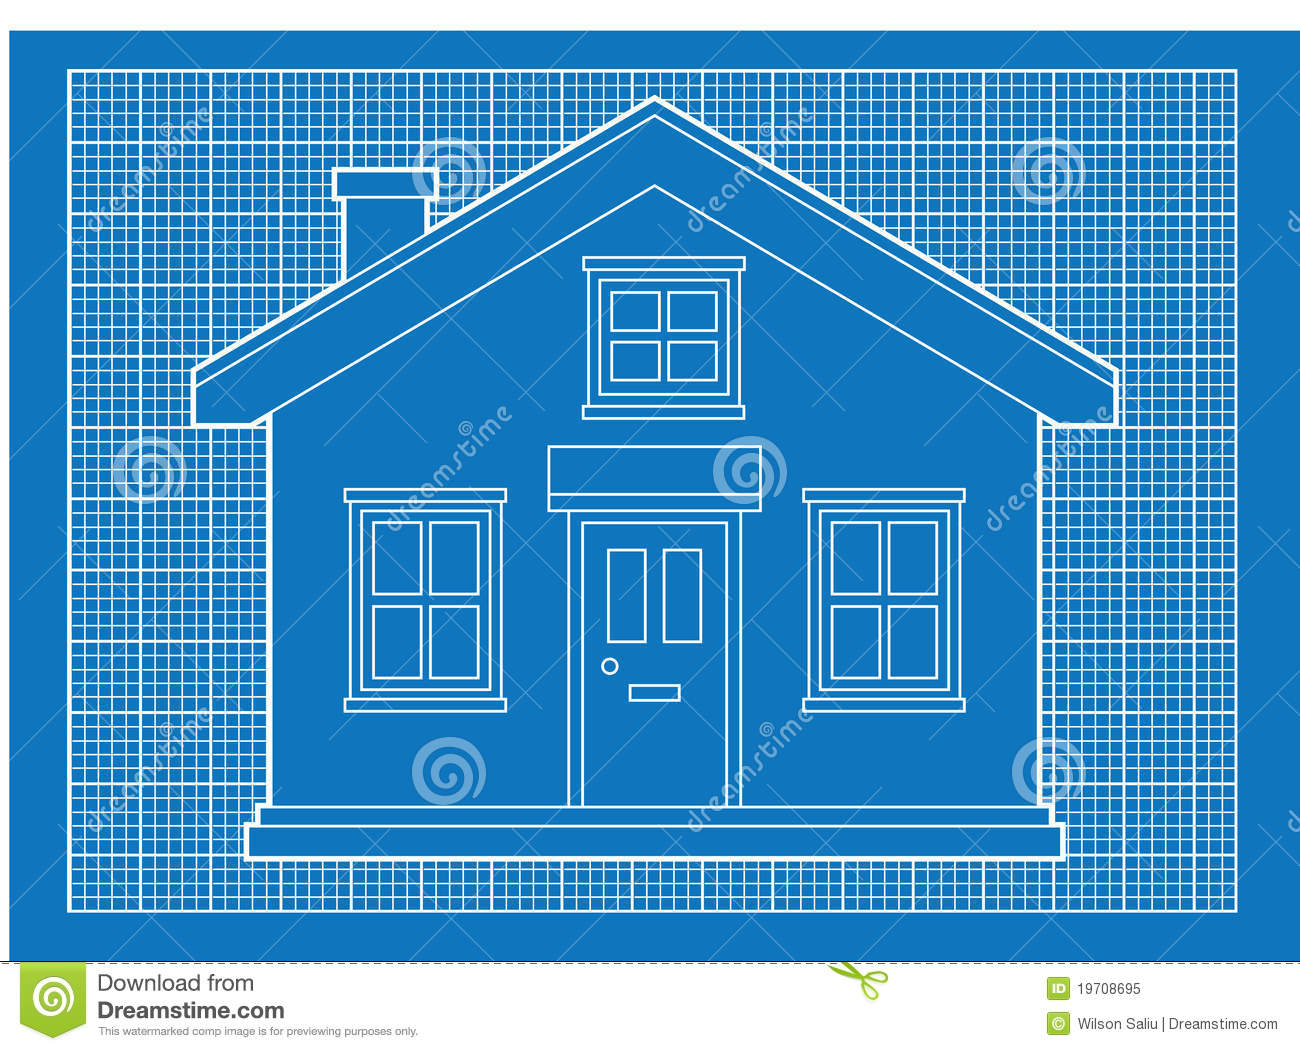 Simple house blueprints royalty free stock photo image for Blueprints for my home